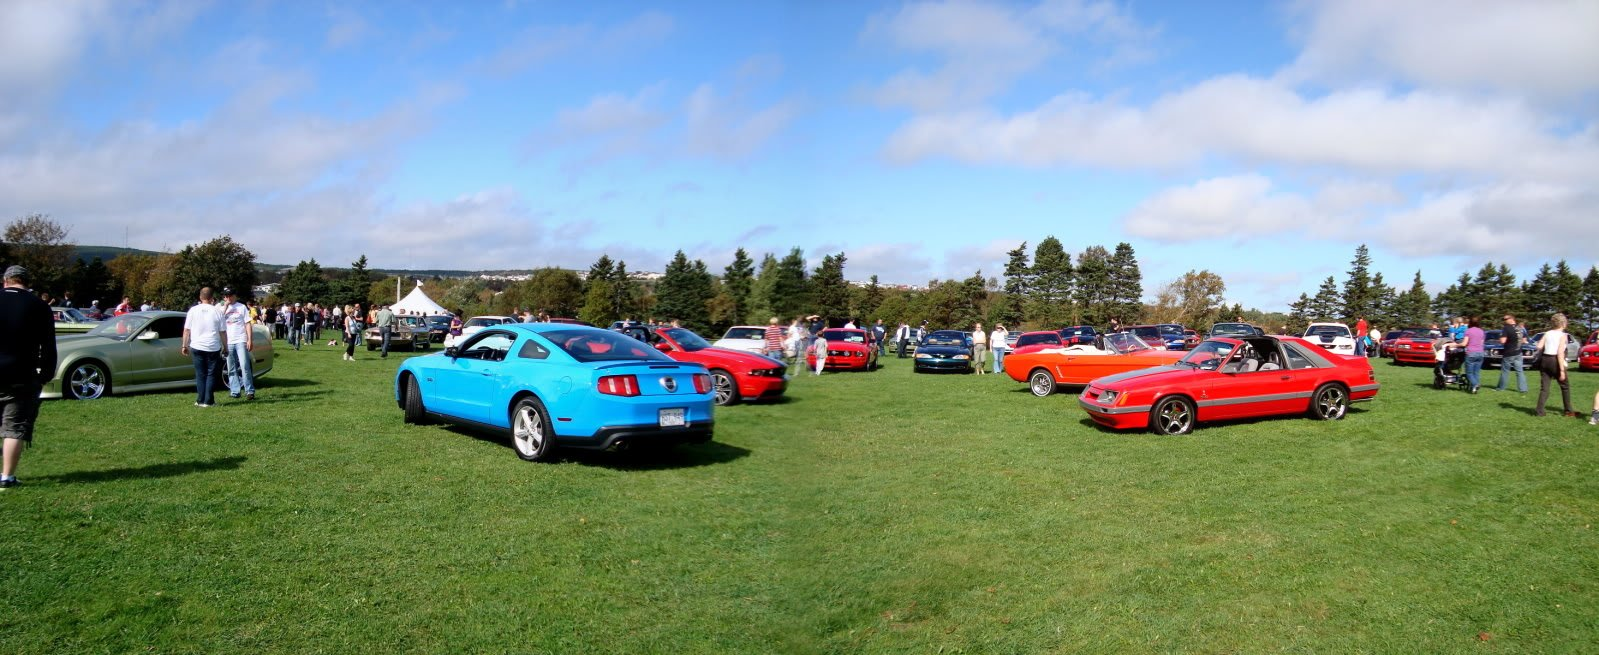 Mustangs in the Park: All Ford Mustangs Car Show in St. John's, Newfoundland-seahorse-961936f9.jpg